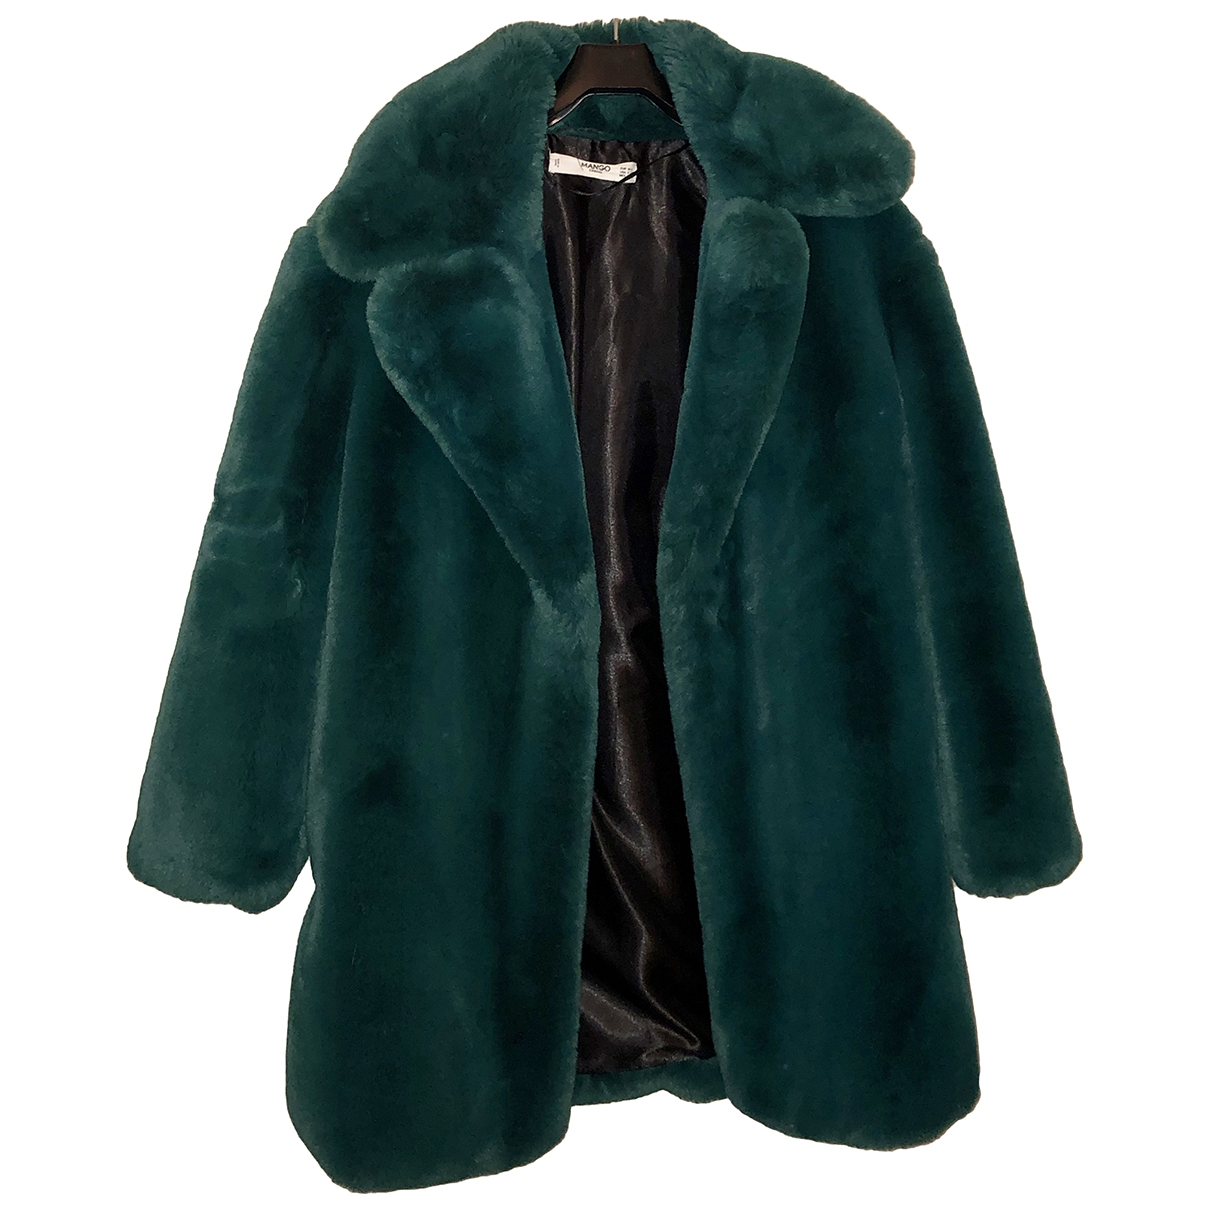 Mango \N Green coat for Women M International